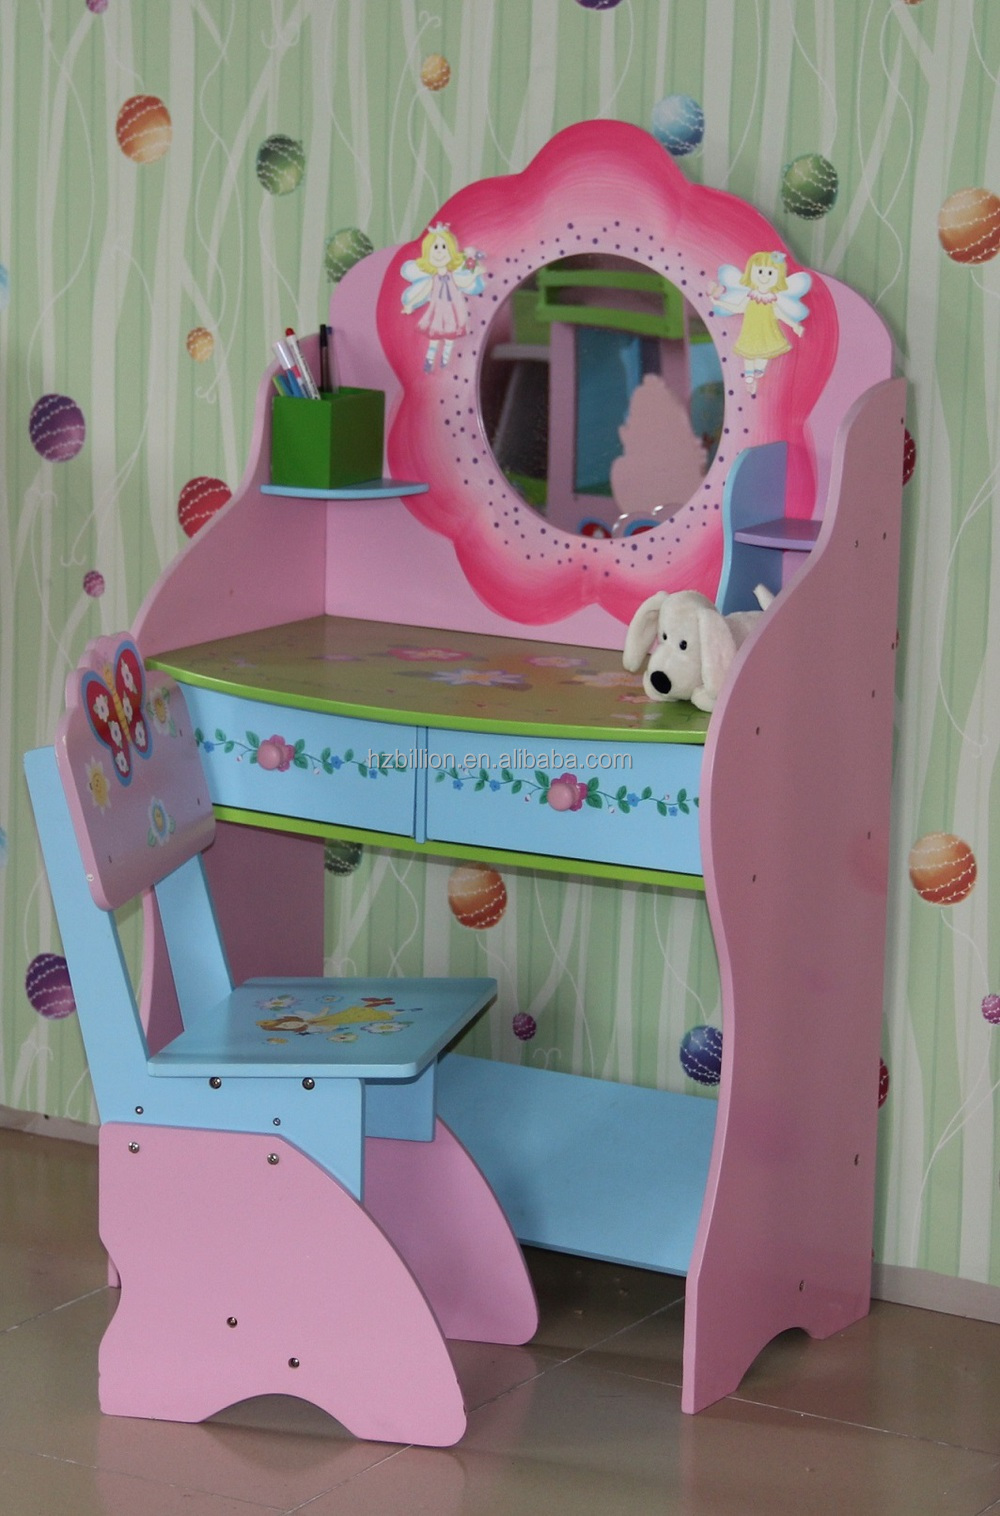 Girls Kids Childrens Wooden Nursery Bedroom Furniture Toy: Sweetheart Wooden Children Dressing Table With Stool Kids